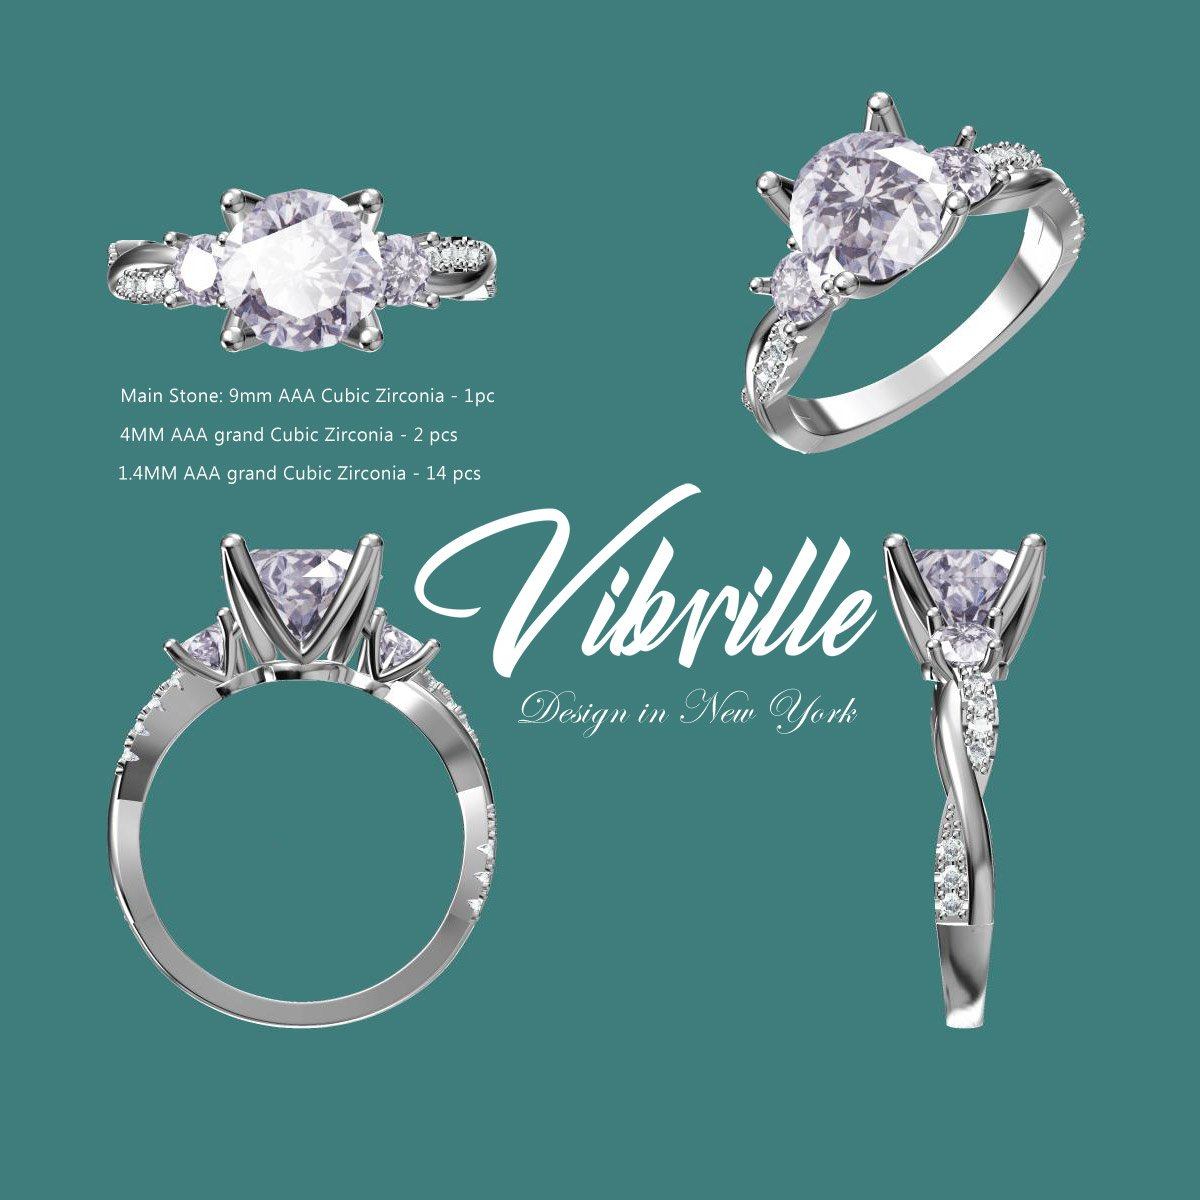 a697960a0cdecc Vibrille Sterling Silver Twisted Vine Round Three Stone Cubic Zirconia  Engagement Ring for Women Size 10 | Amazon.com